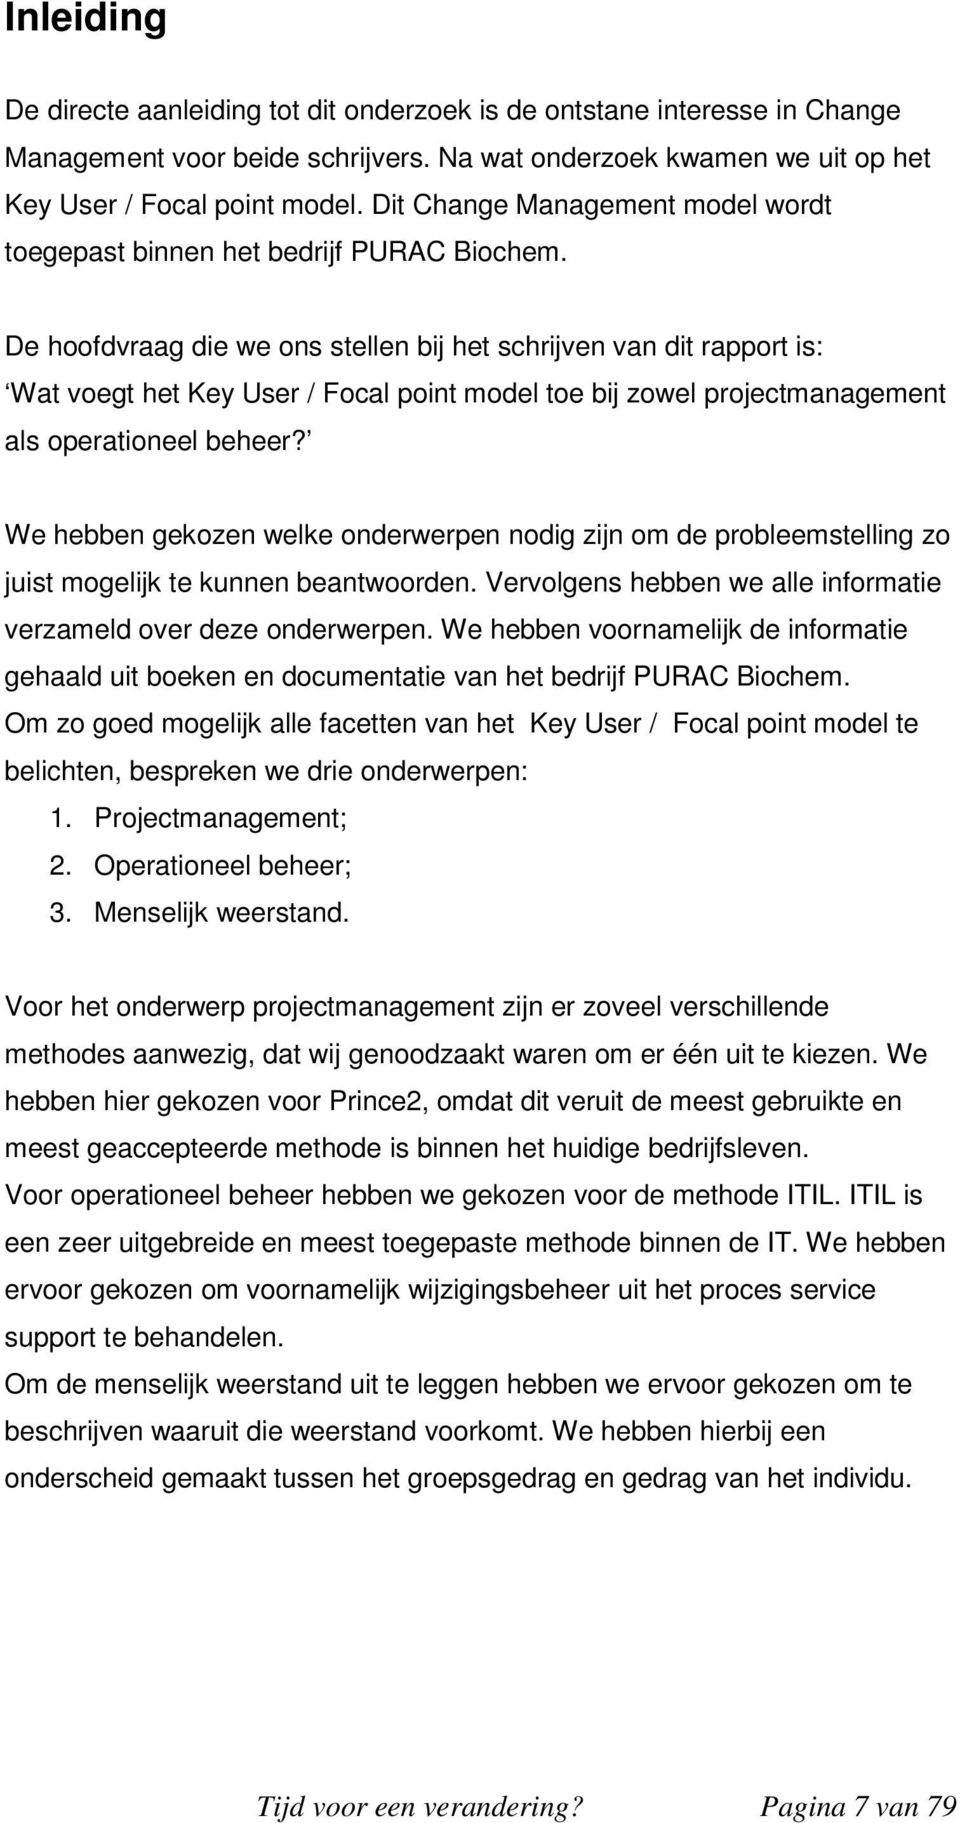 De hoofdvraag die we ons stellen bij het schrijven van dit rapport is: Wat voegt het Key User / Focal point model toe bij zowel projectmanagement als operationeel beheer?